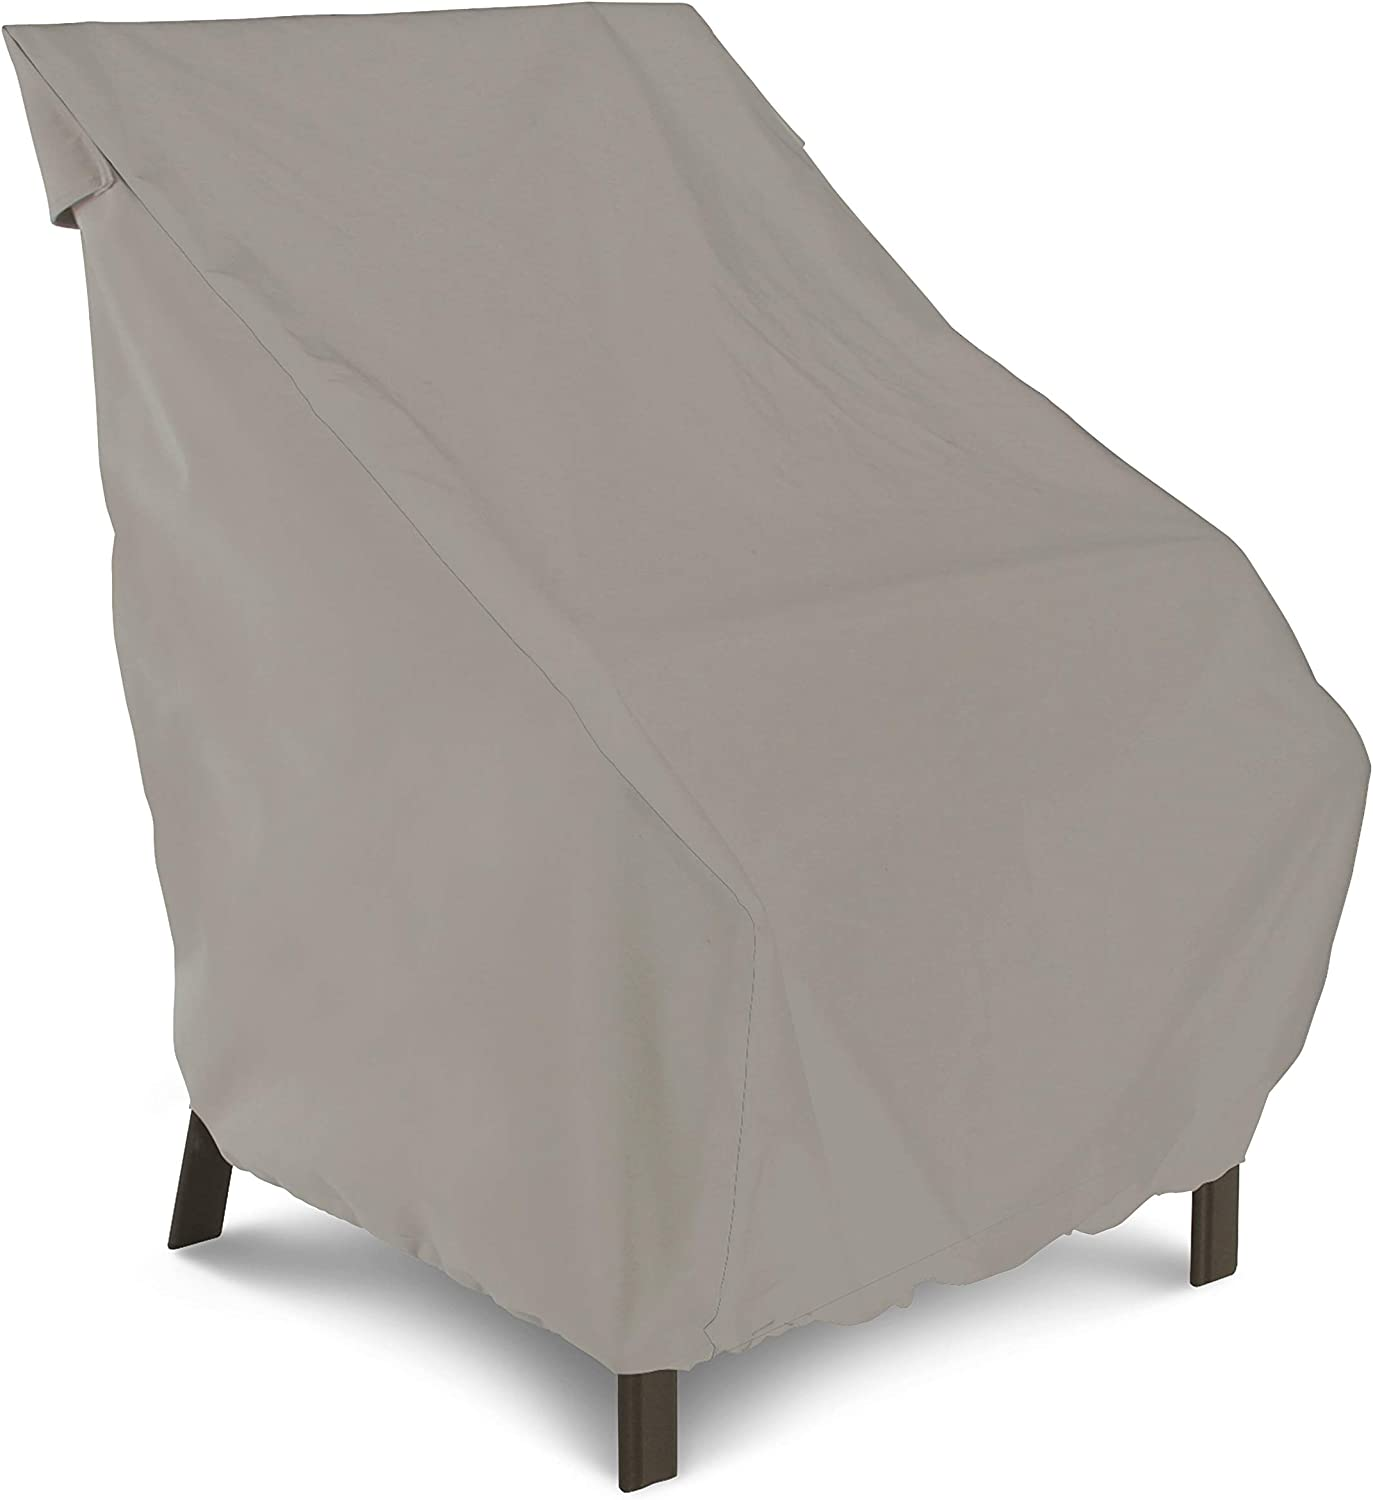 AmazonBasics Patio Highback Chair Cover, Grey